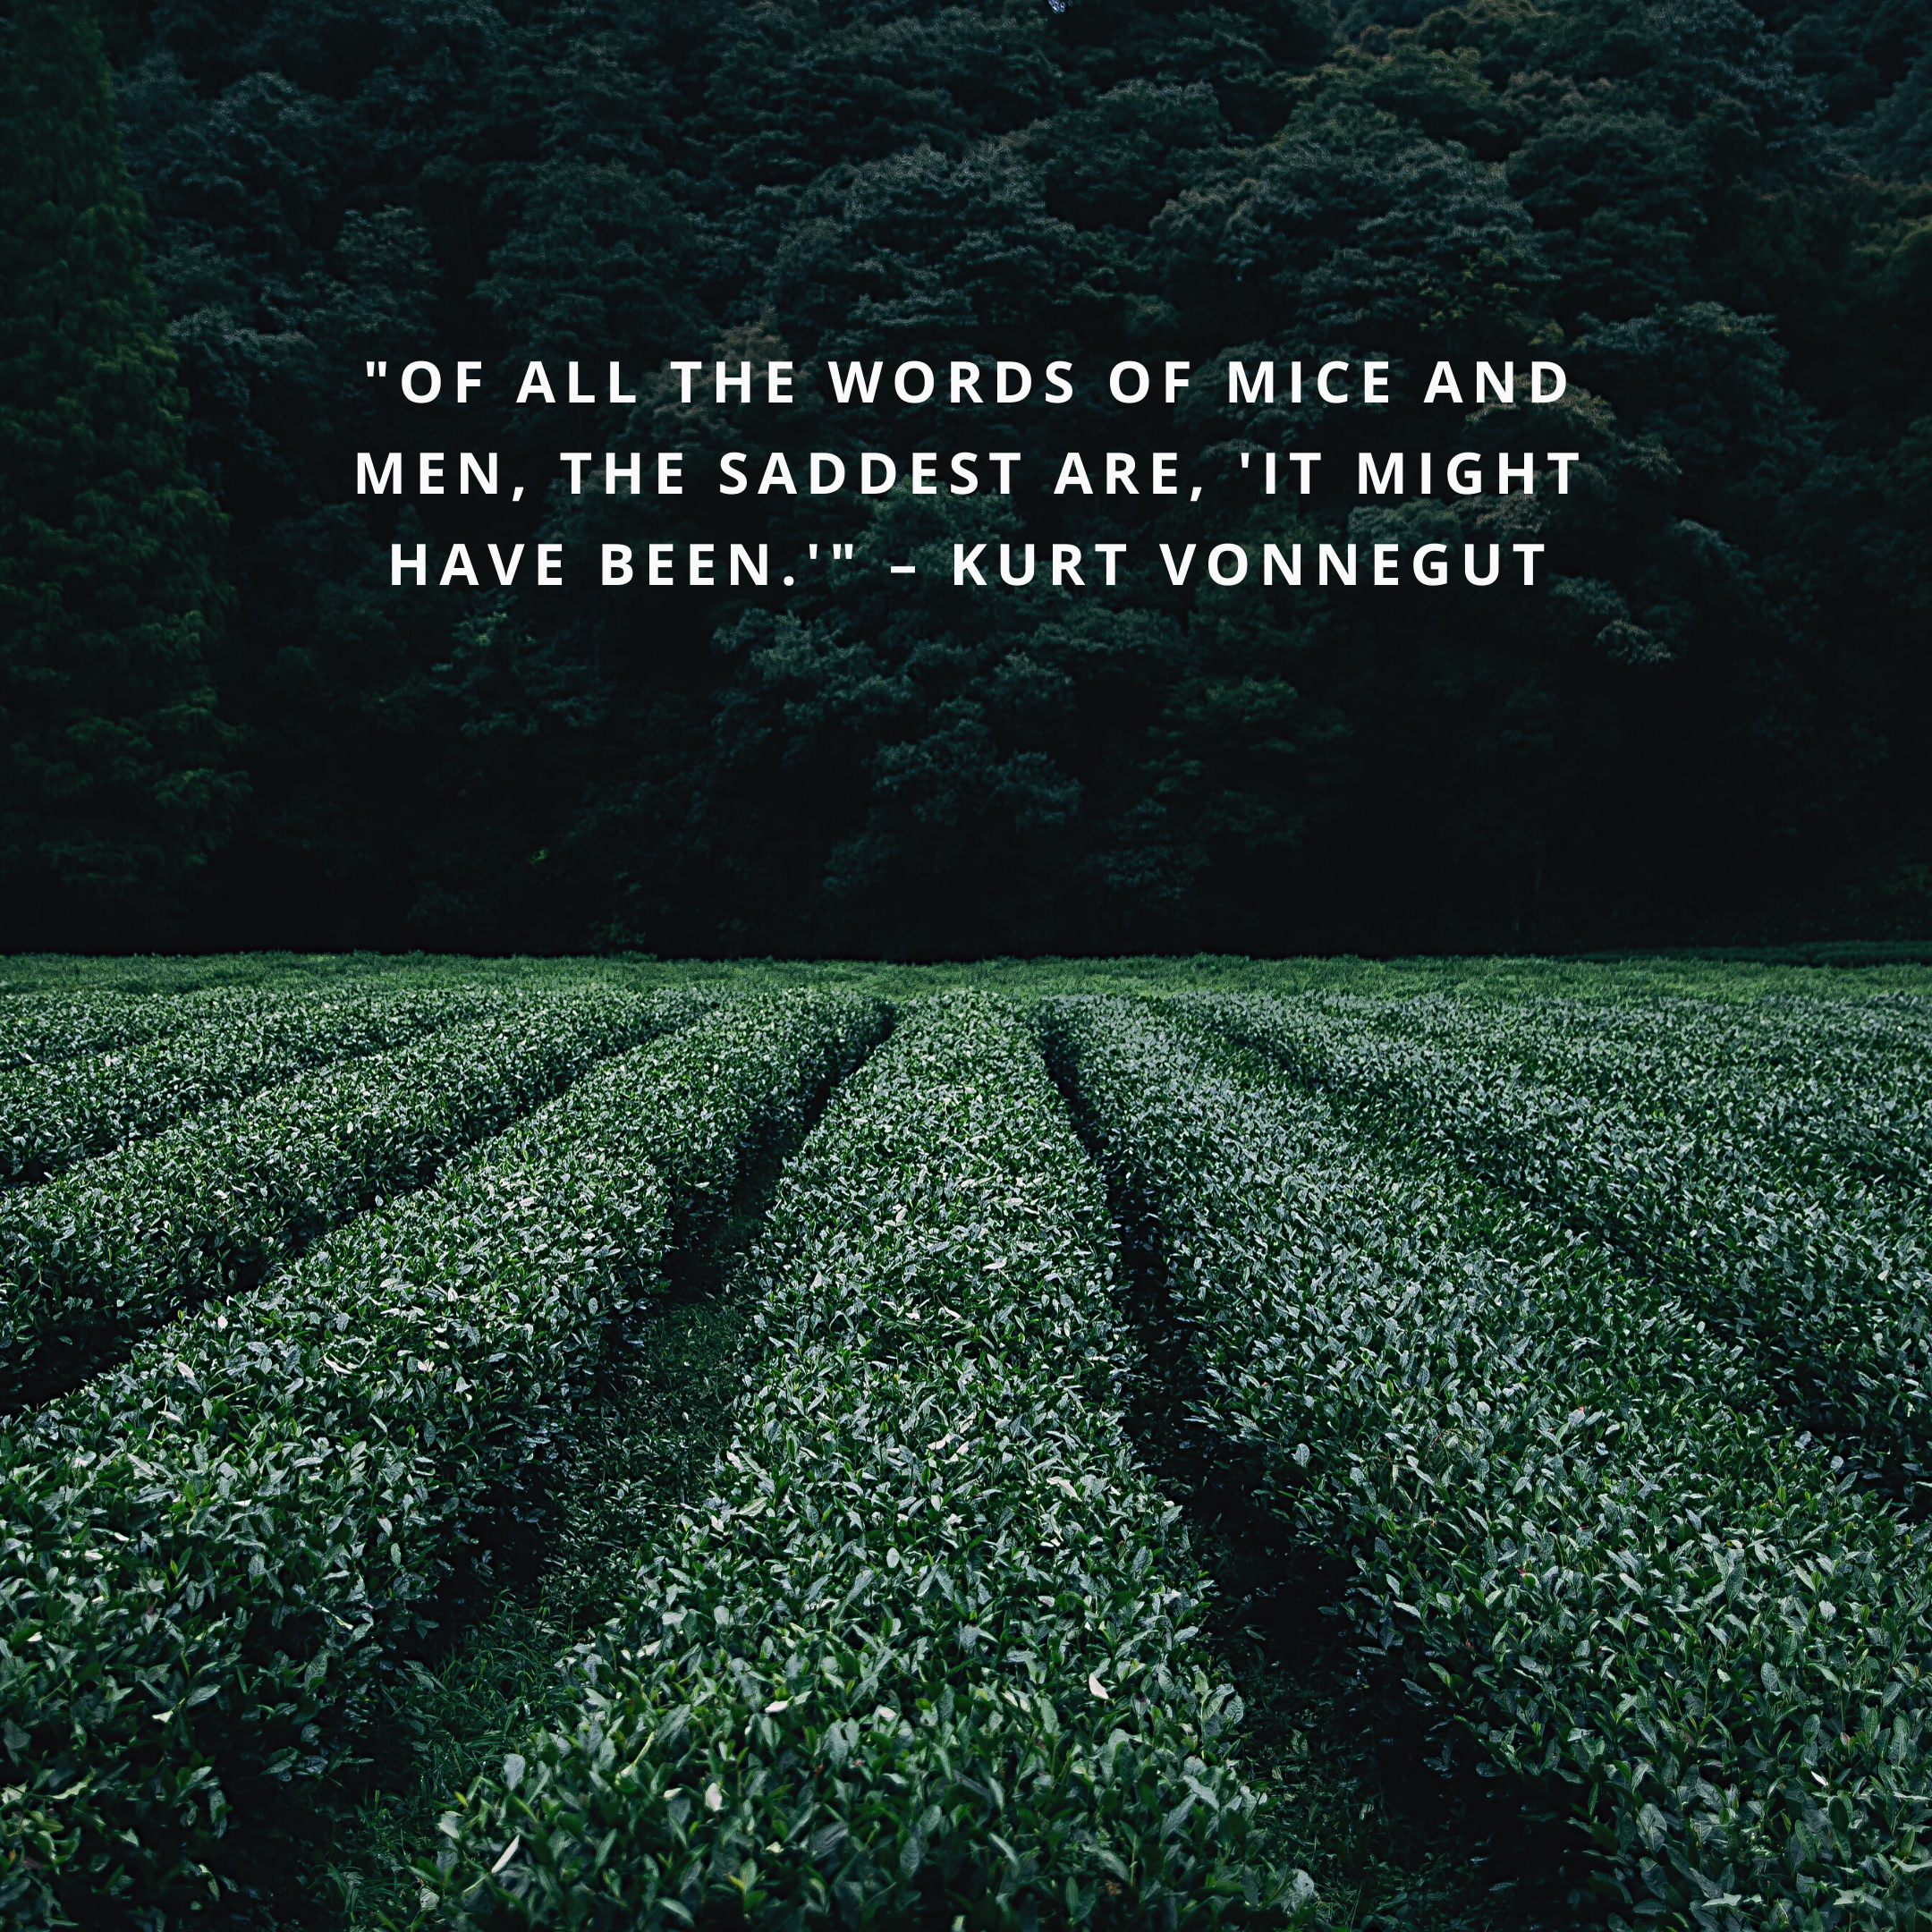 """""""Of all the words of mice and men, the saddest are, 'It might have been.'"""" –Kurt Vonnegut"""